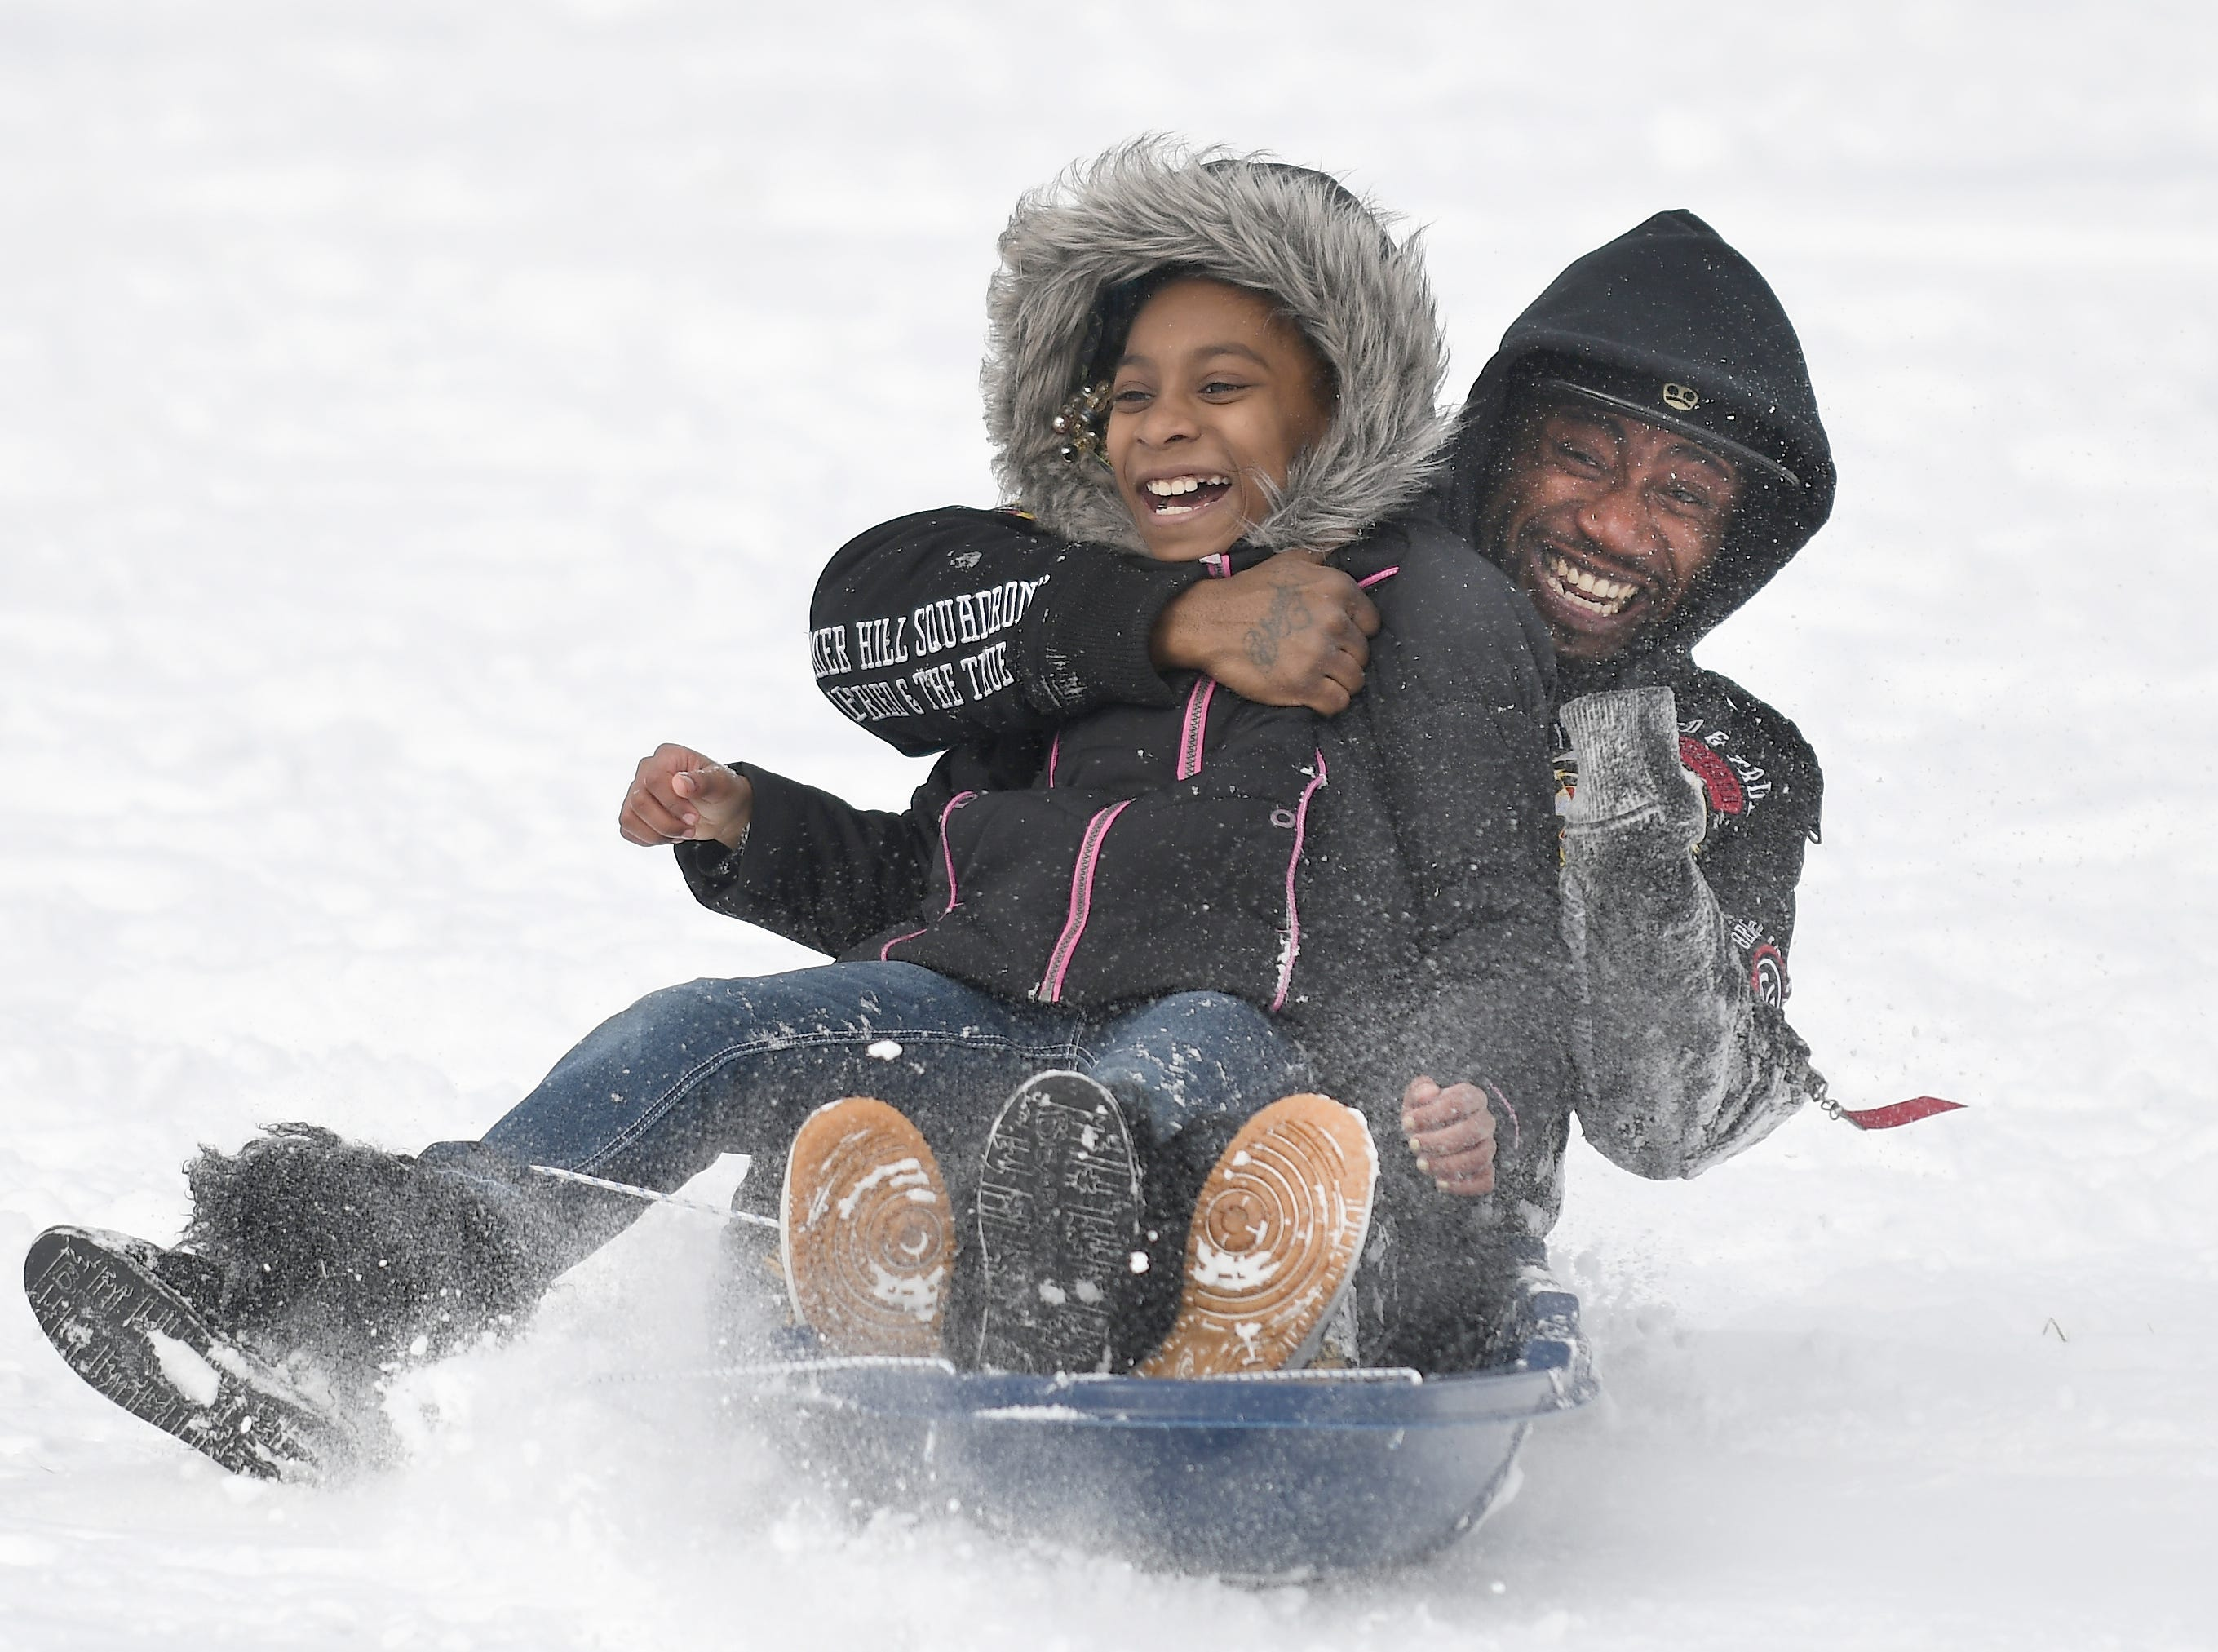 Lejai Criter, 9, and Ryland Criter slide backward down the hill at Madison Heights Community Park in Madison Heights on Monday, Feb. 18, 2019.